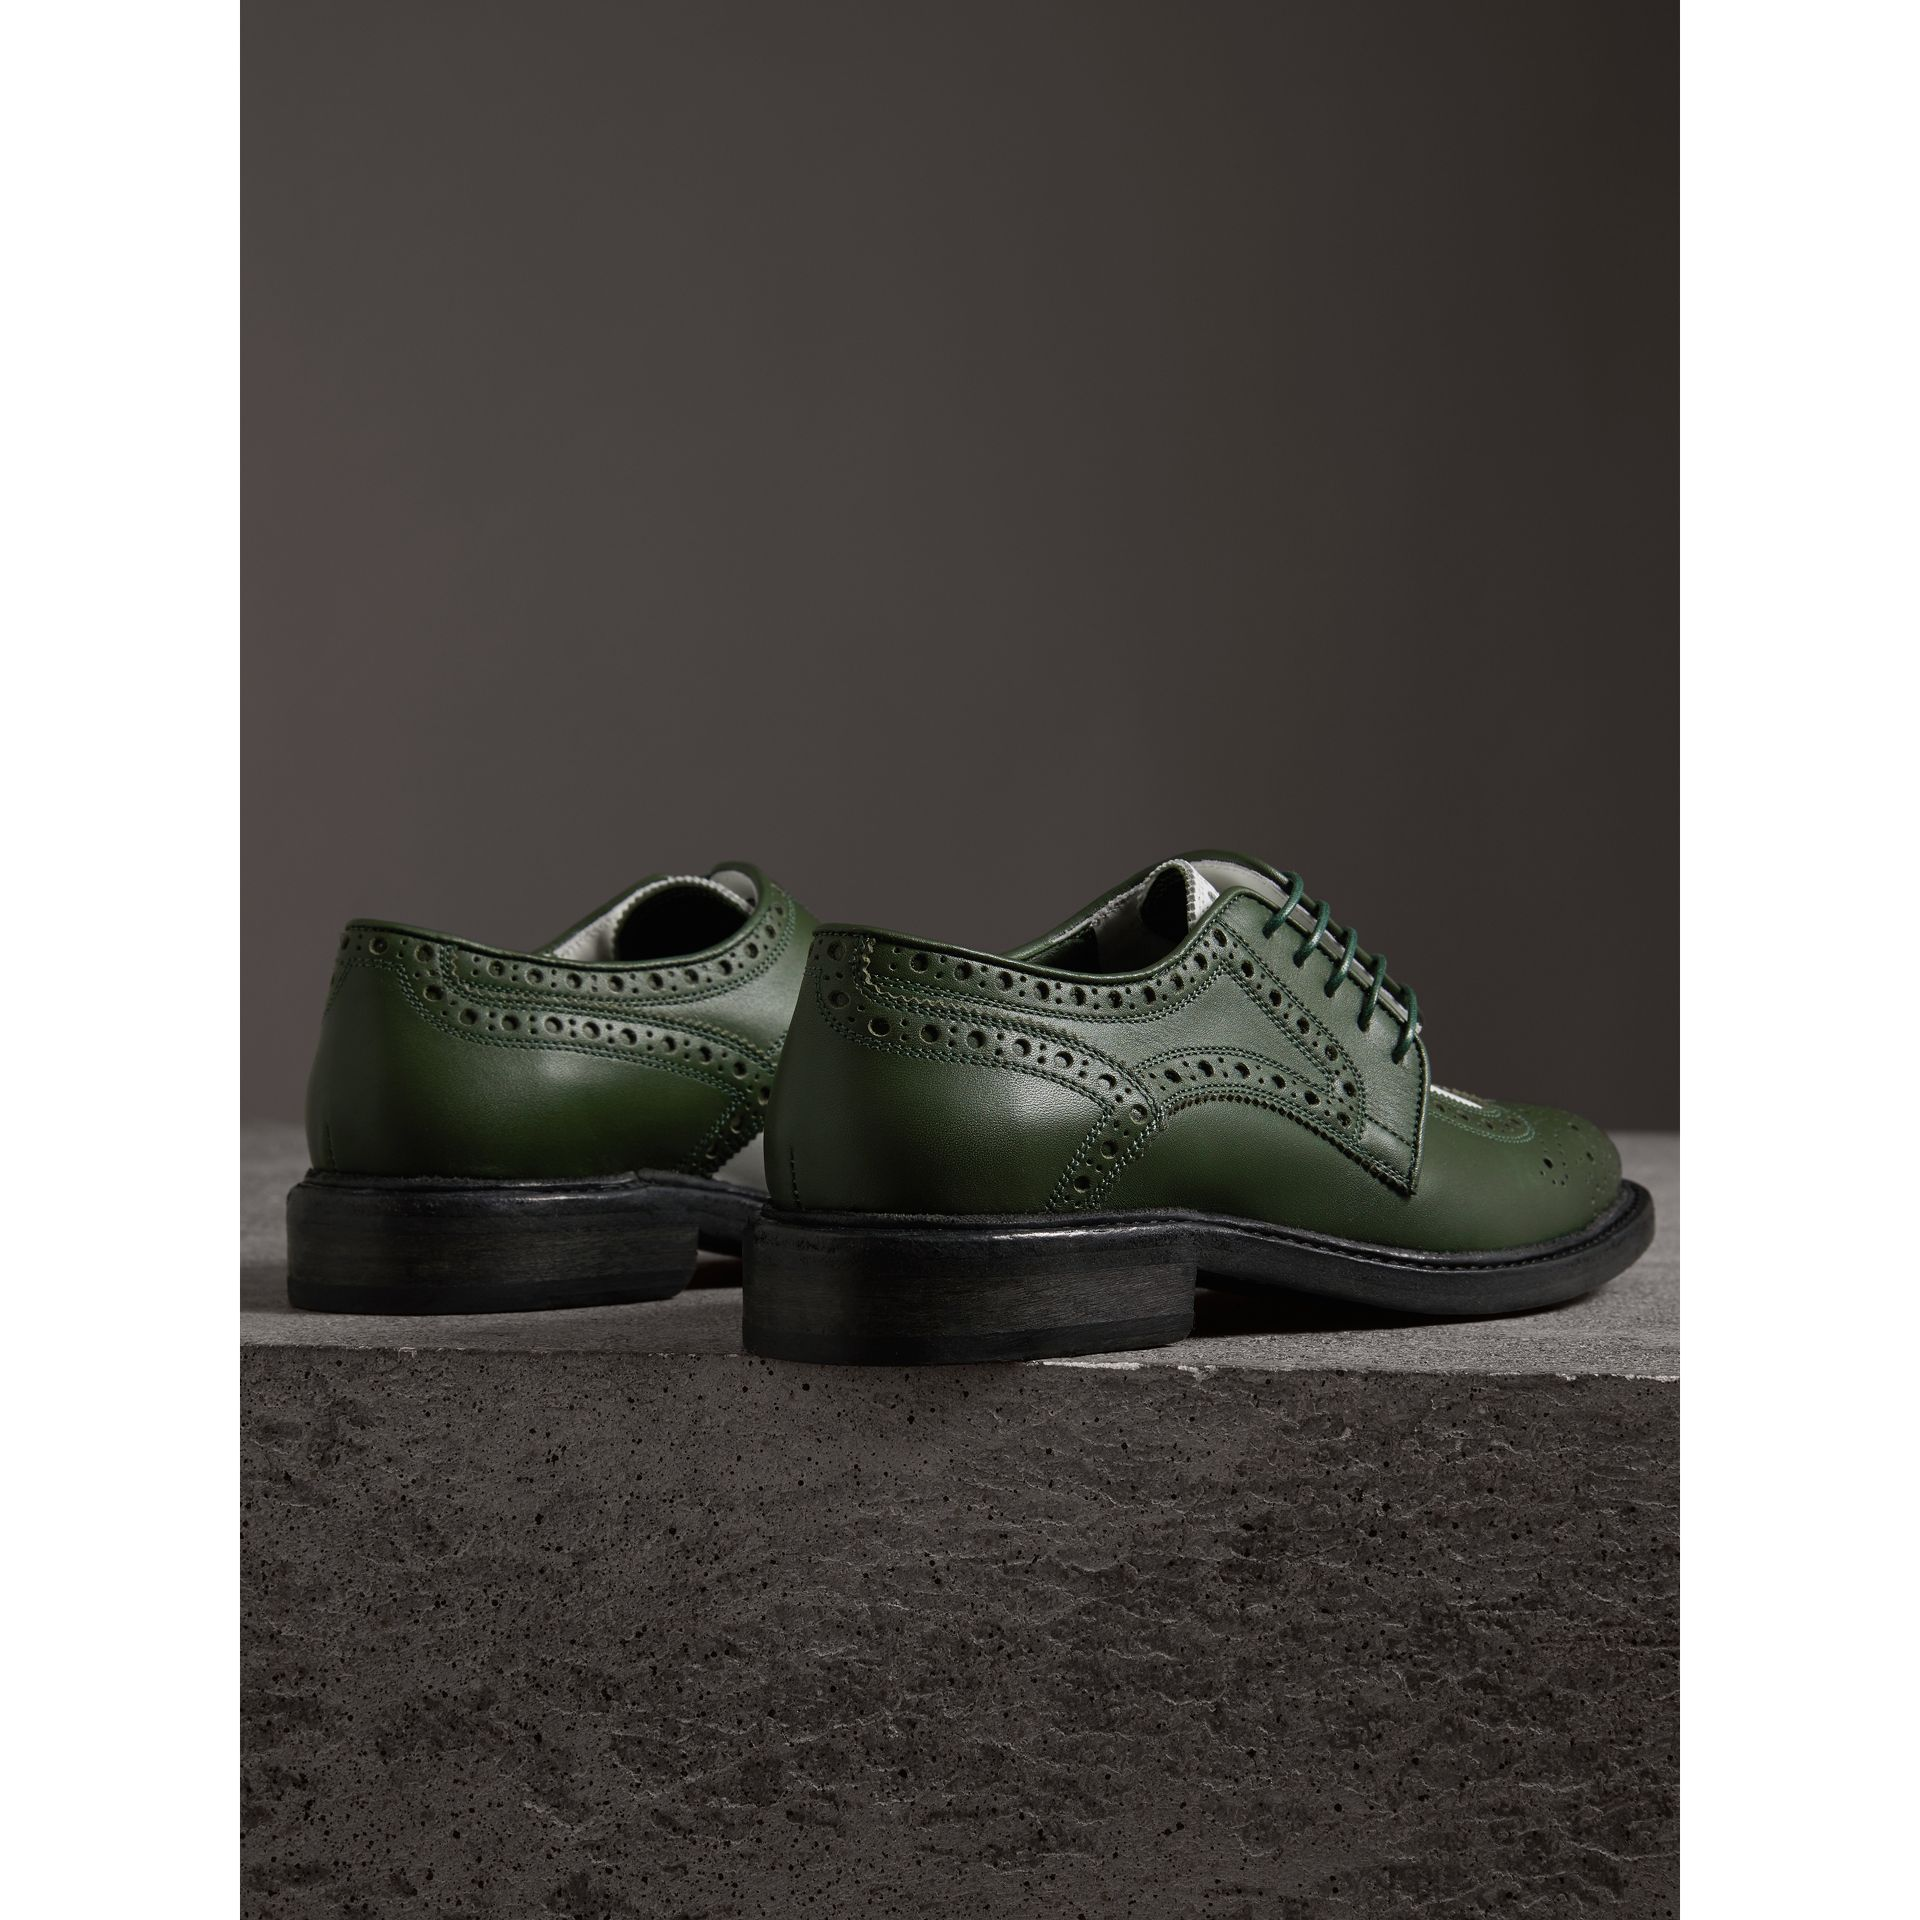 Two-tone Asymmetric Closure Leather Brogues in Dark Green - Women | Burberry United States - gallery image 3